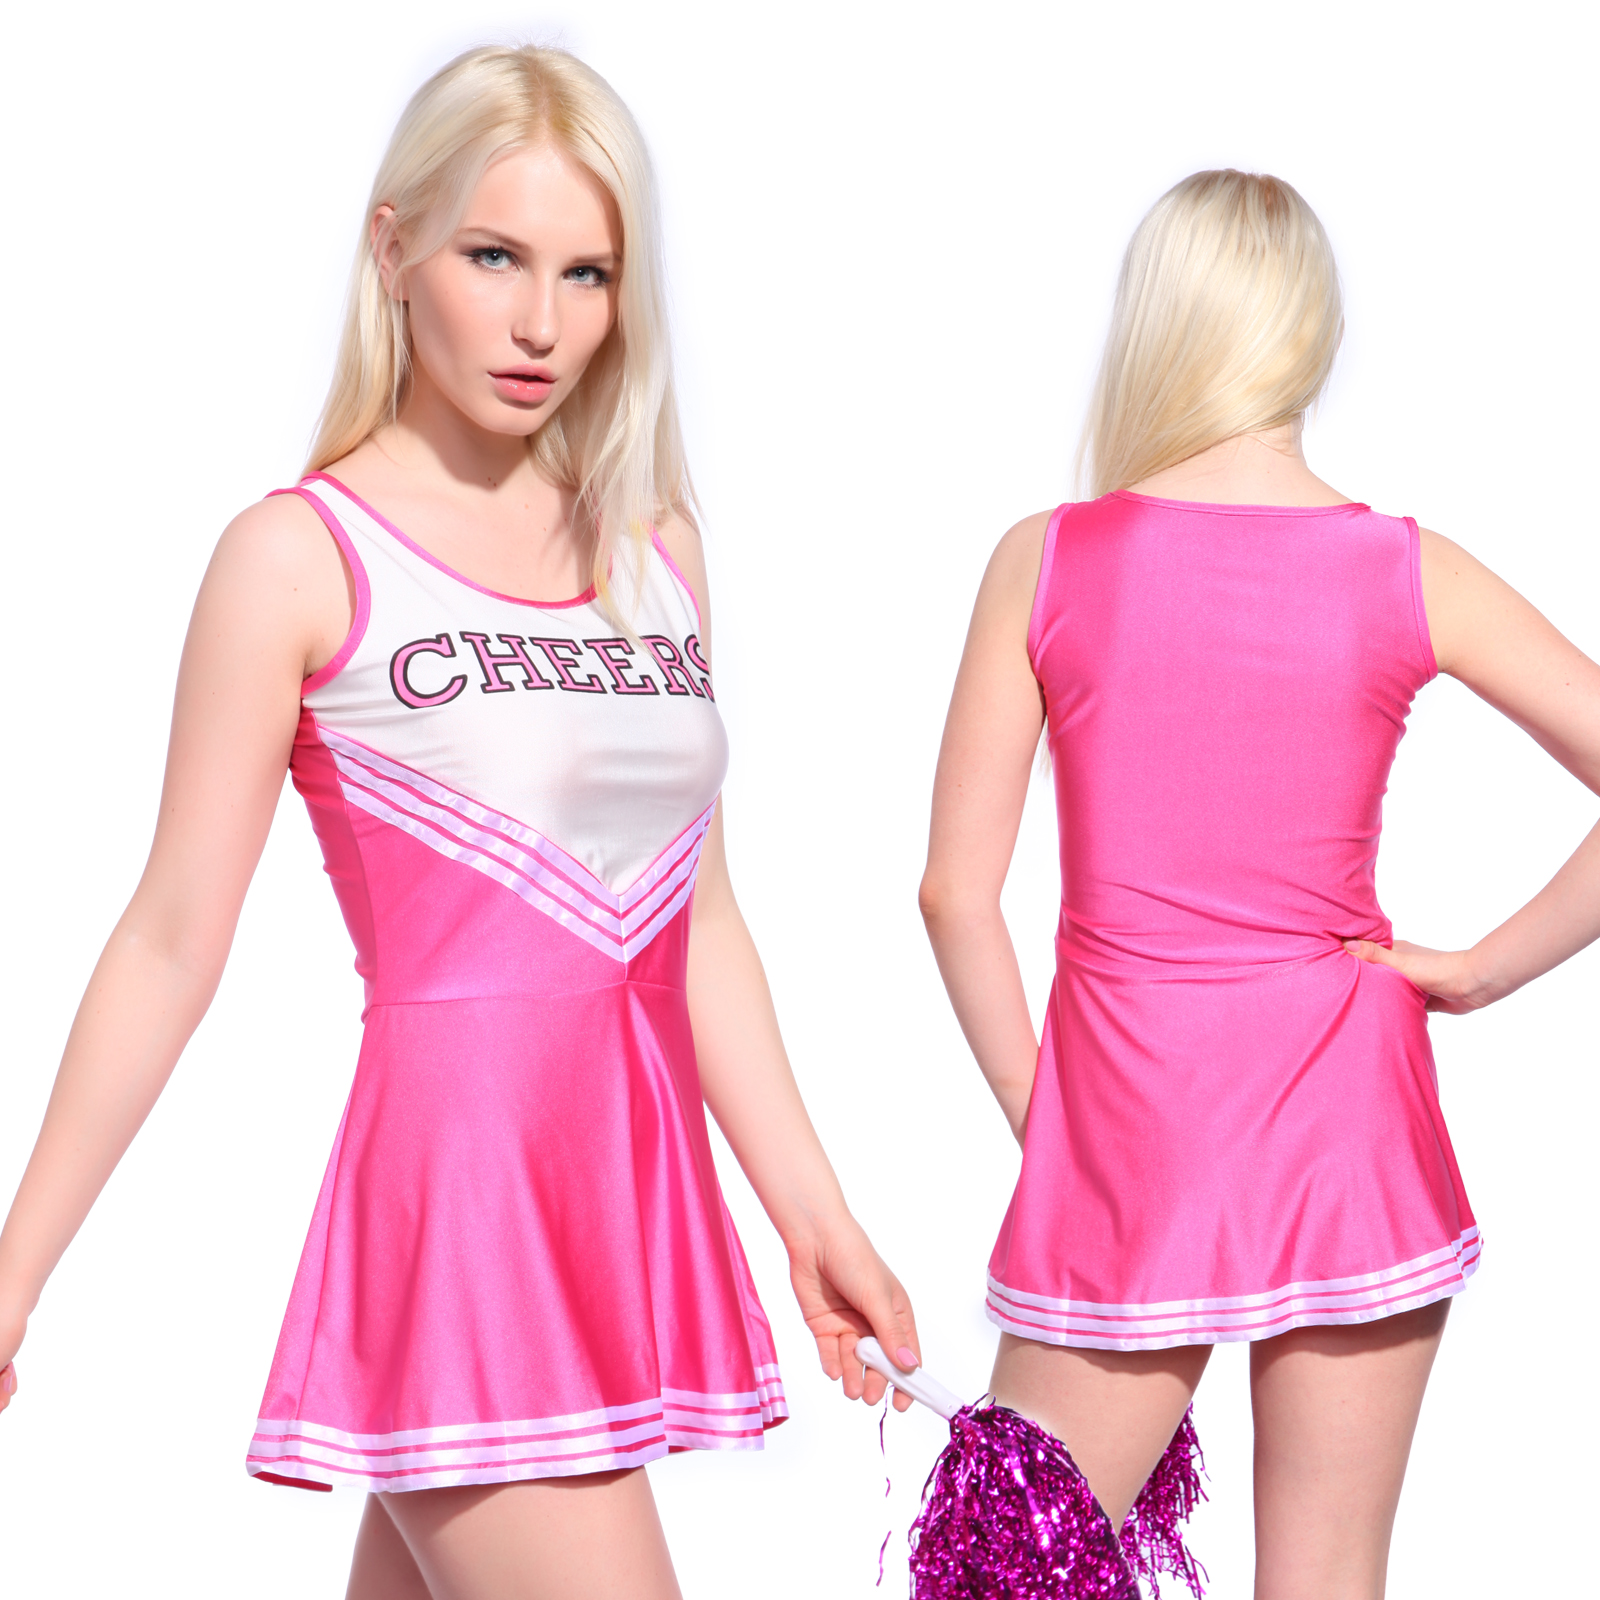 teen-cheerleading-outfit